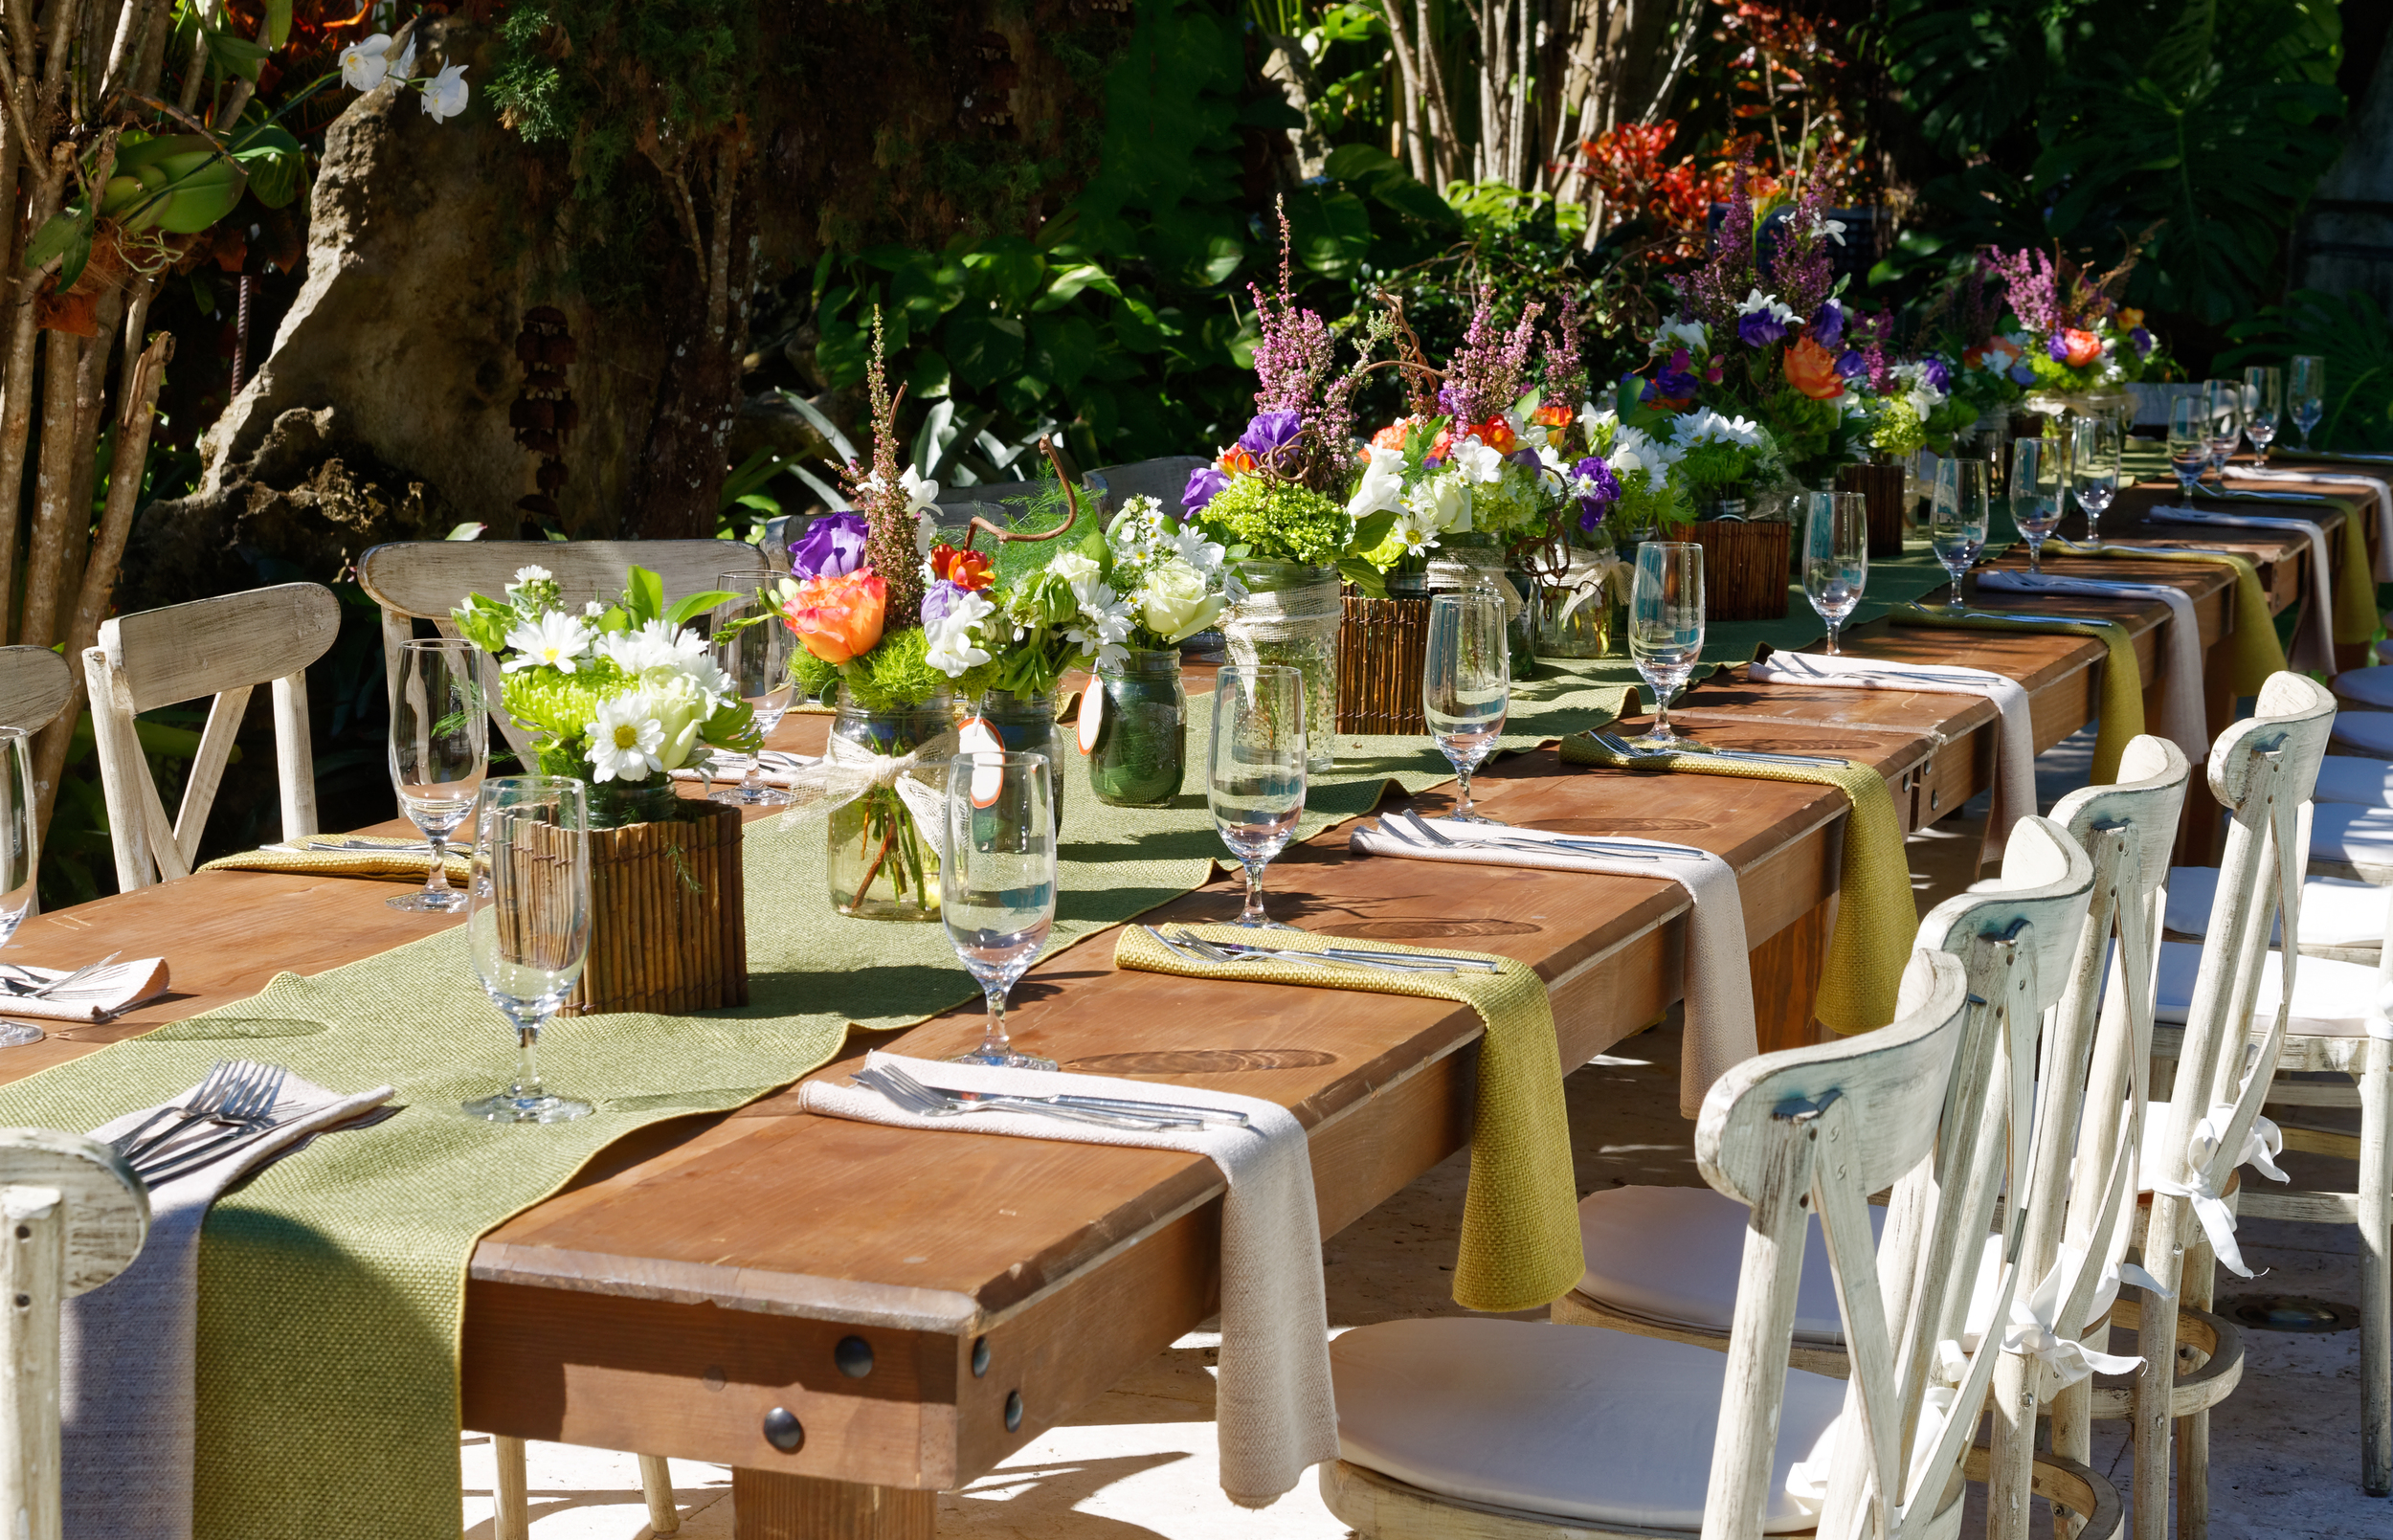 Thierry Isambert Culinary and Event design - Table Setting For A Garden Brunch At Home